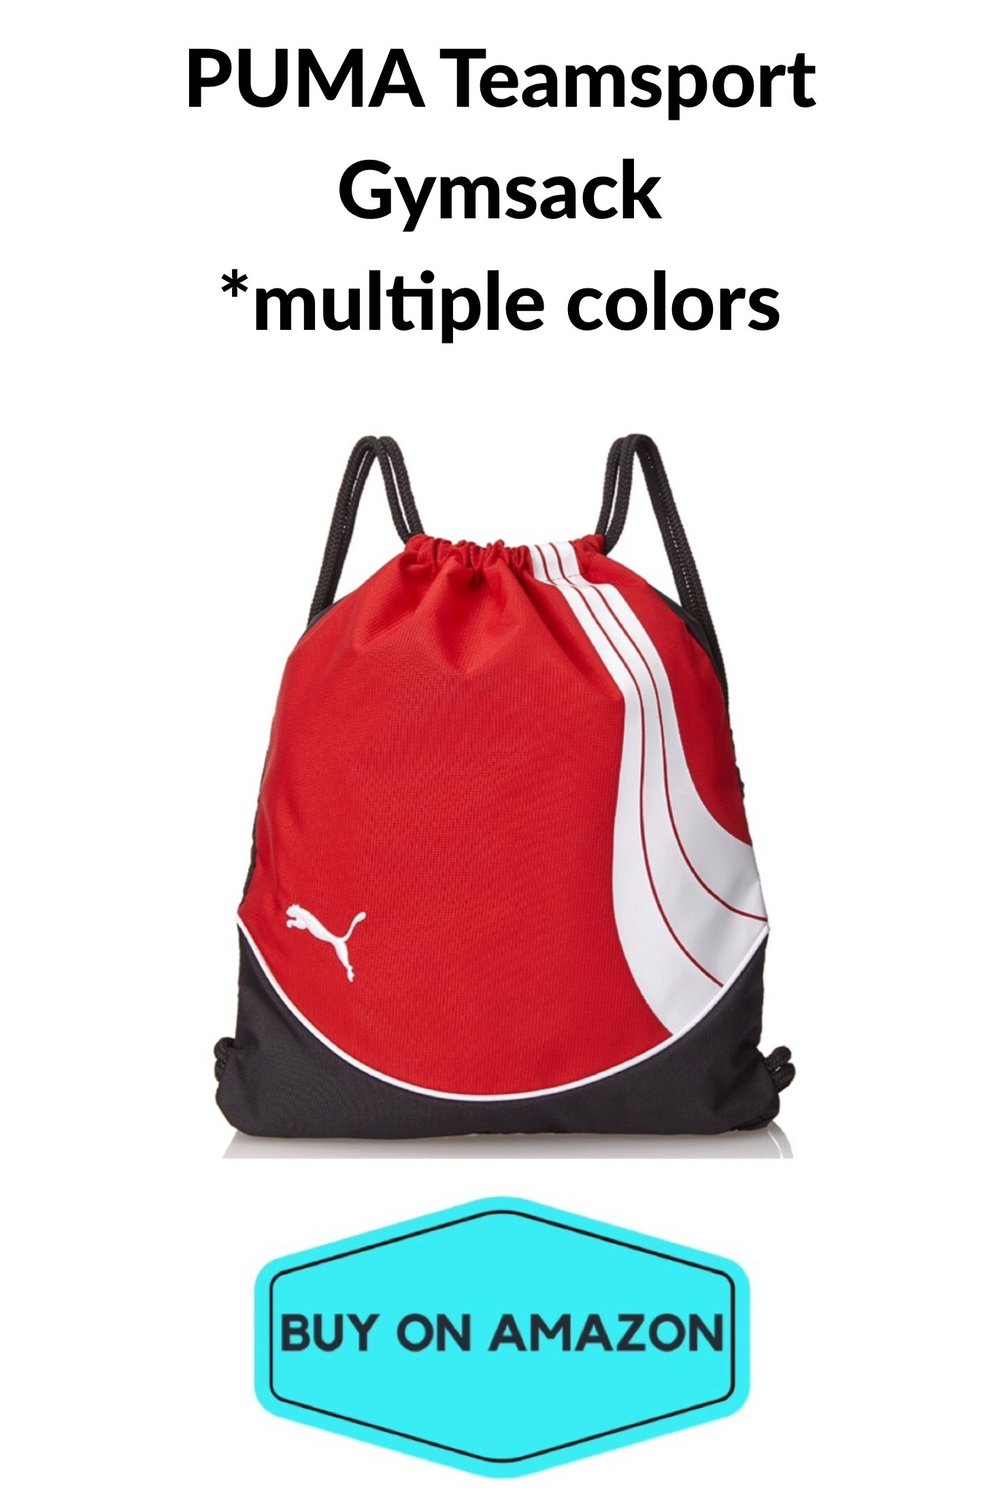 PUMA Teamsport Gymsack